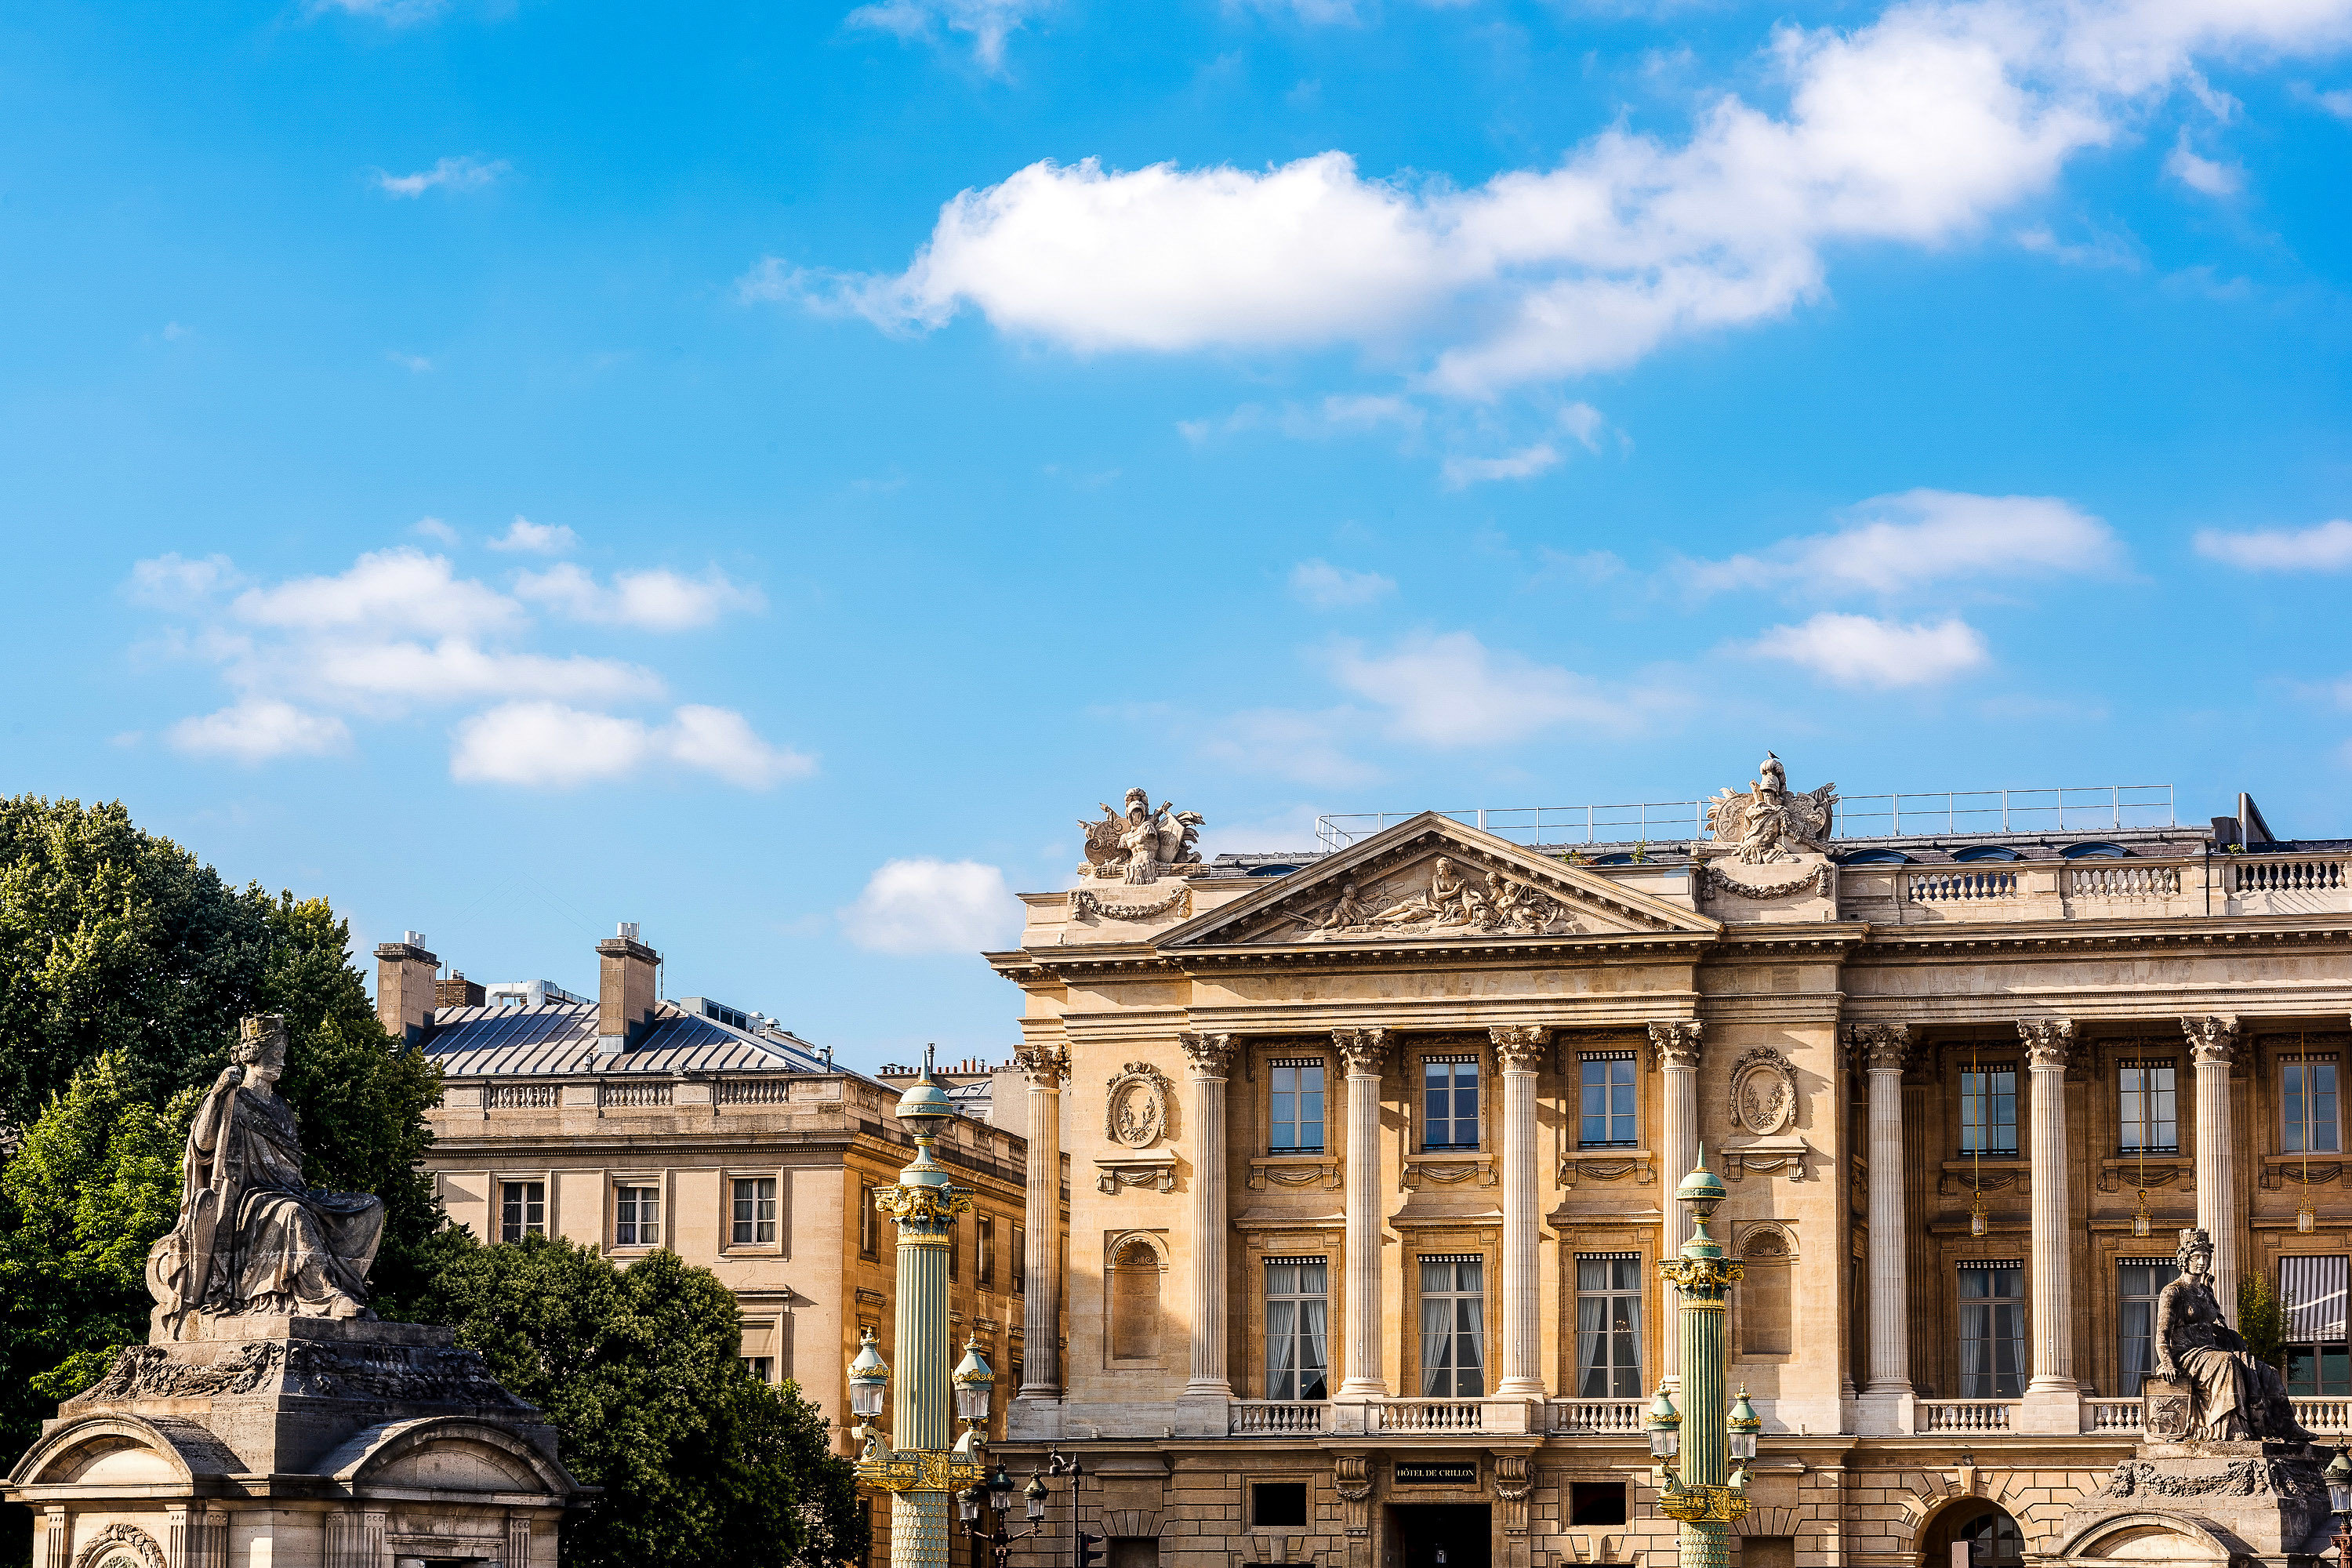 europe Trip Ideas outdoor building sky landmark stately home estate cloud daytime mansion home tree house palace facade classical architecture residential area château City real estate roof window government building plaza stone